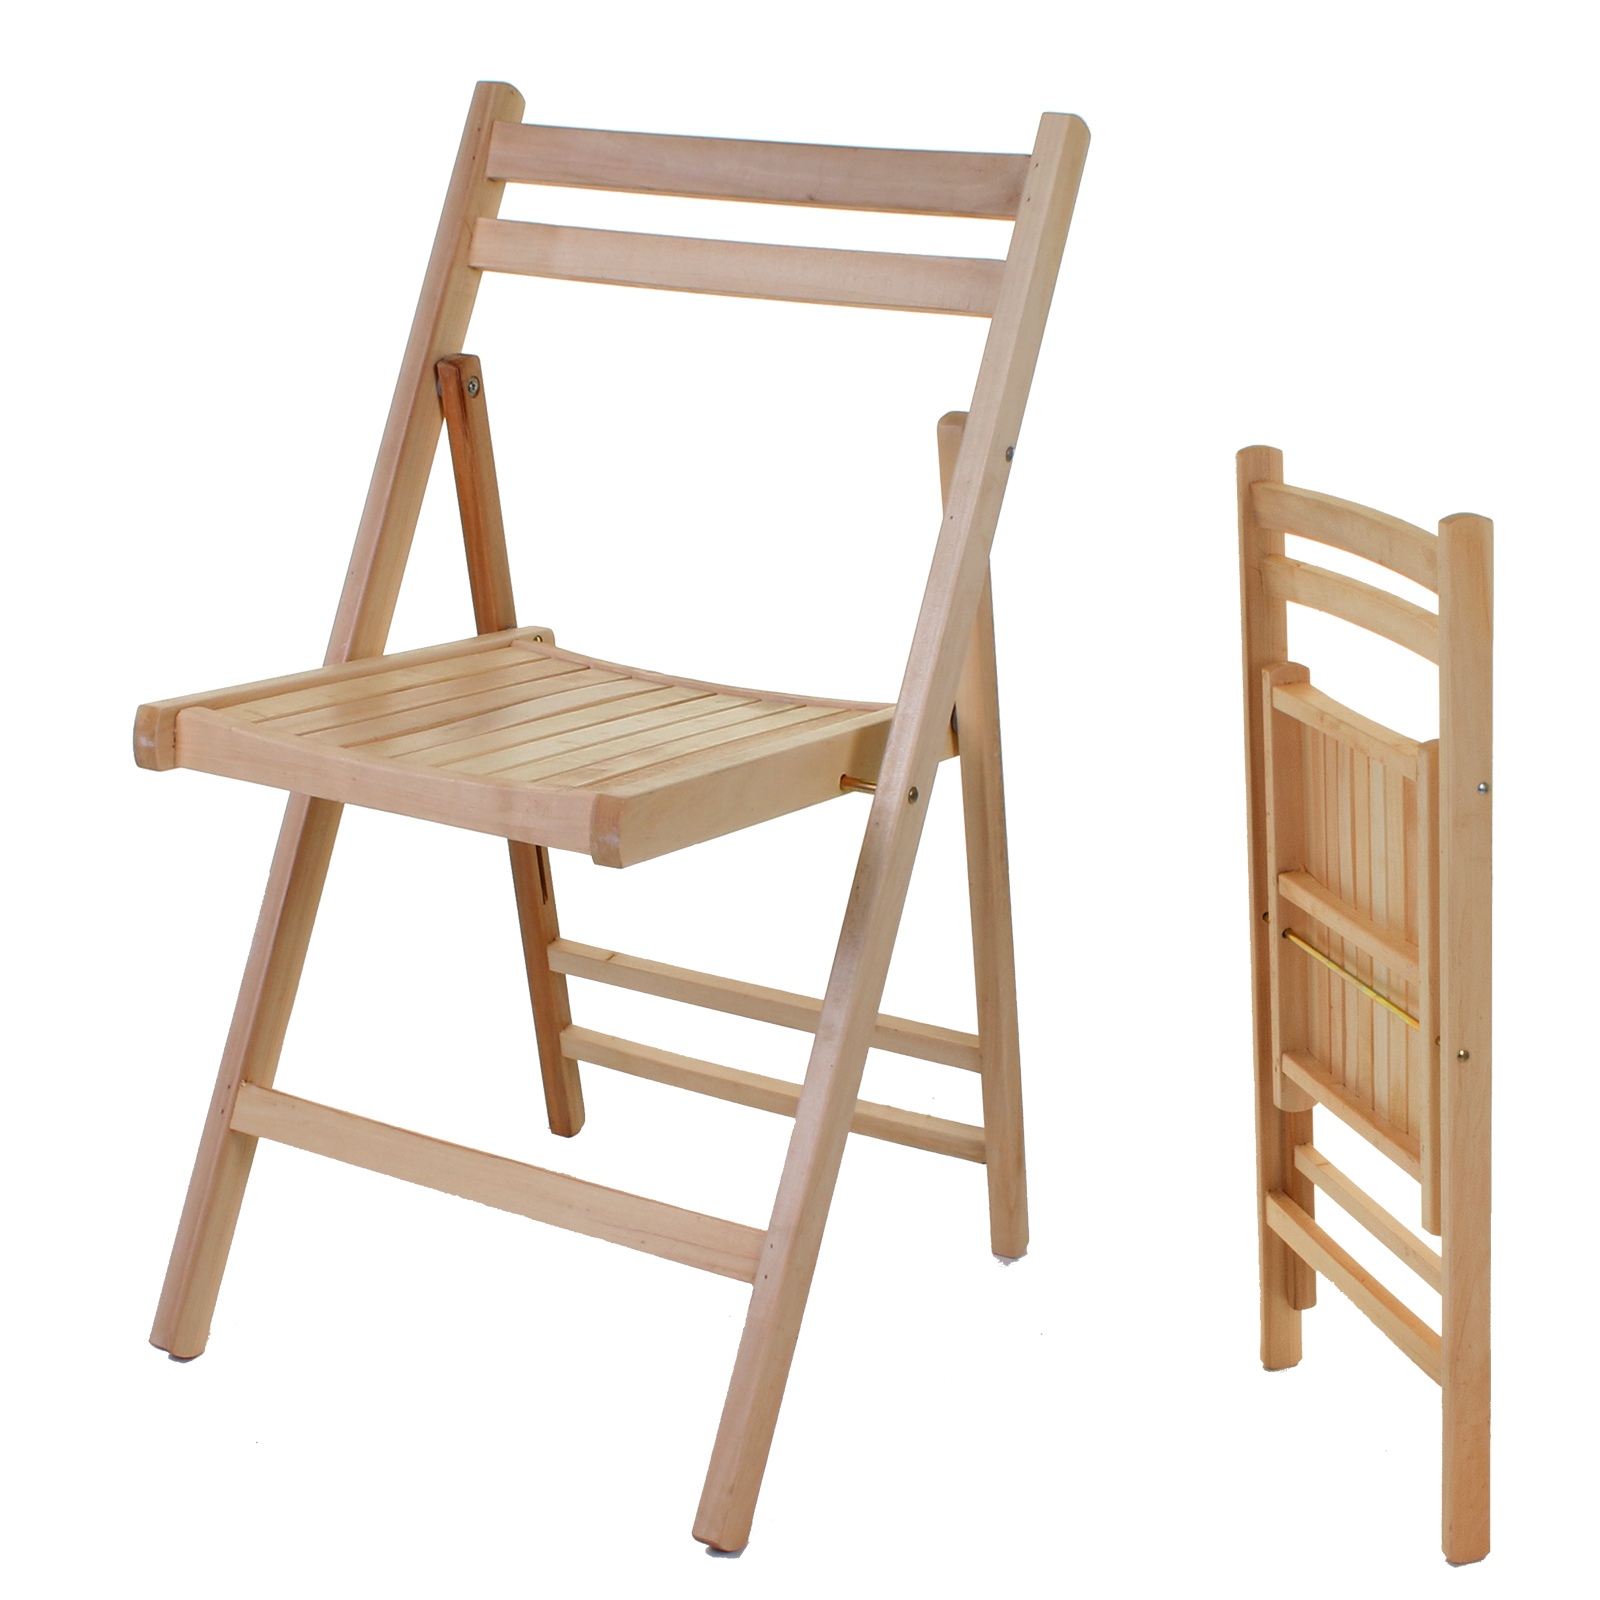 Wooden Folding Chair Indoor Outdoor Slatted Natural Dining Patio